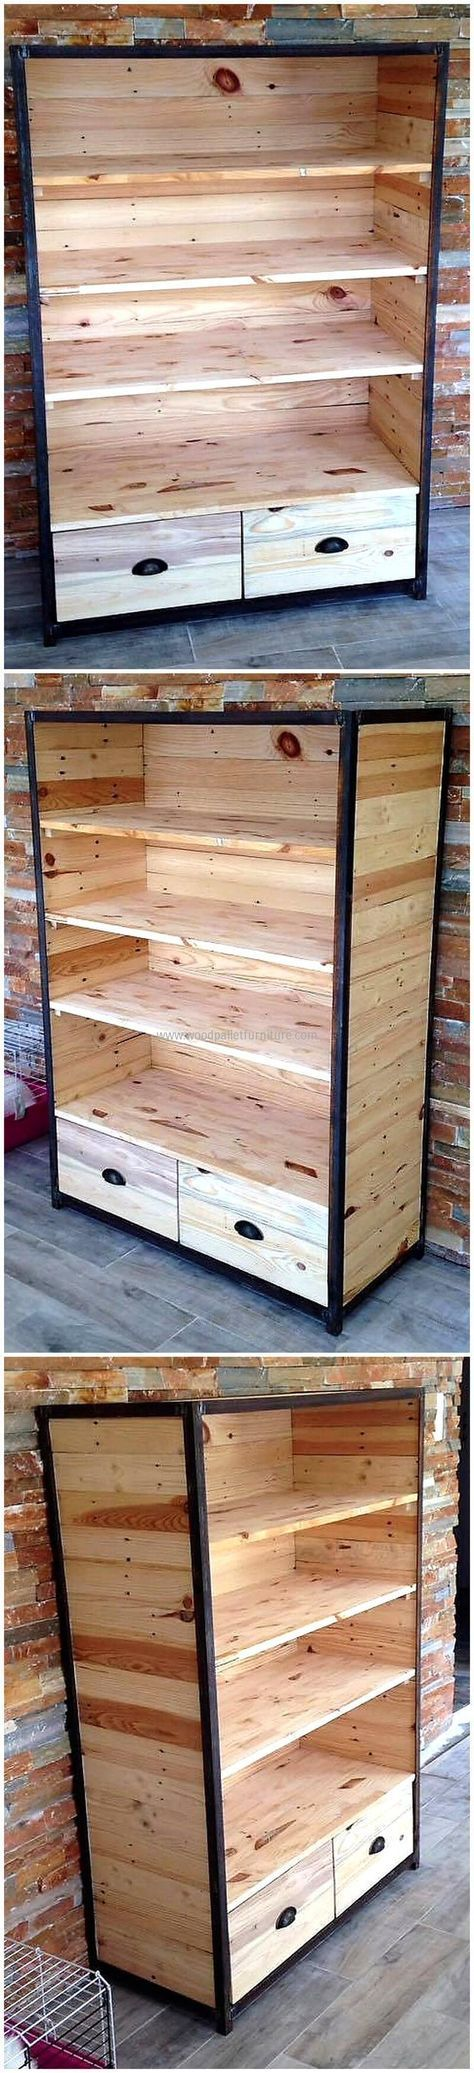 I'd use pine and old bed rails